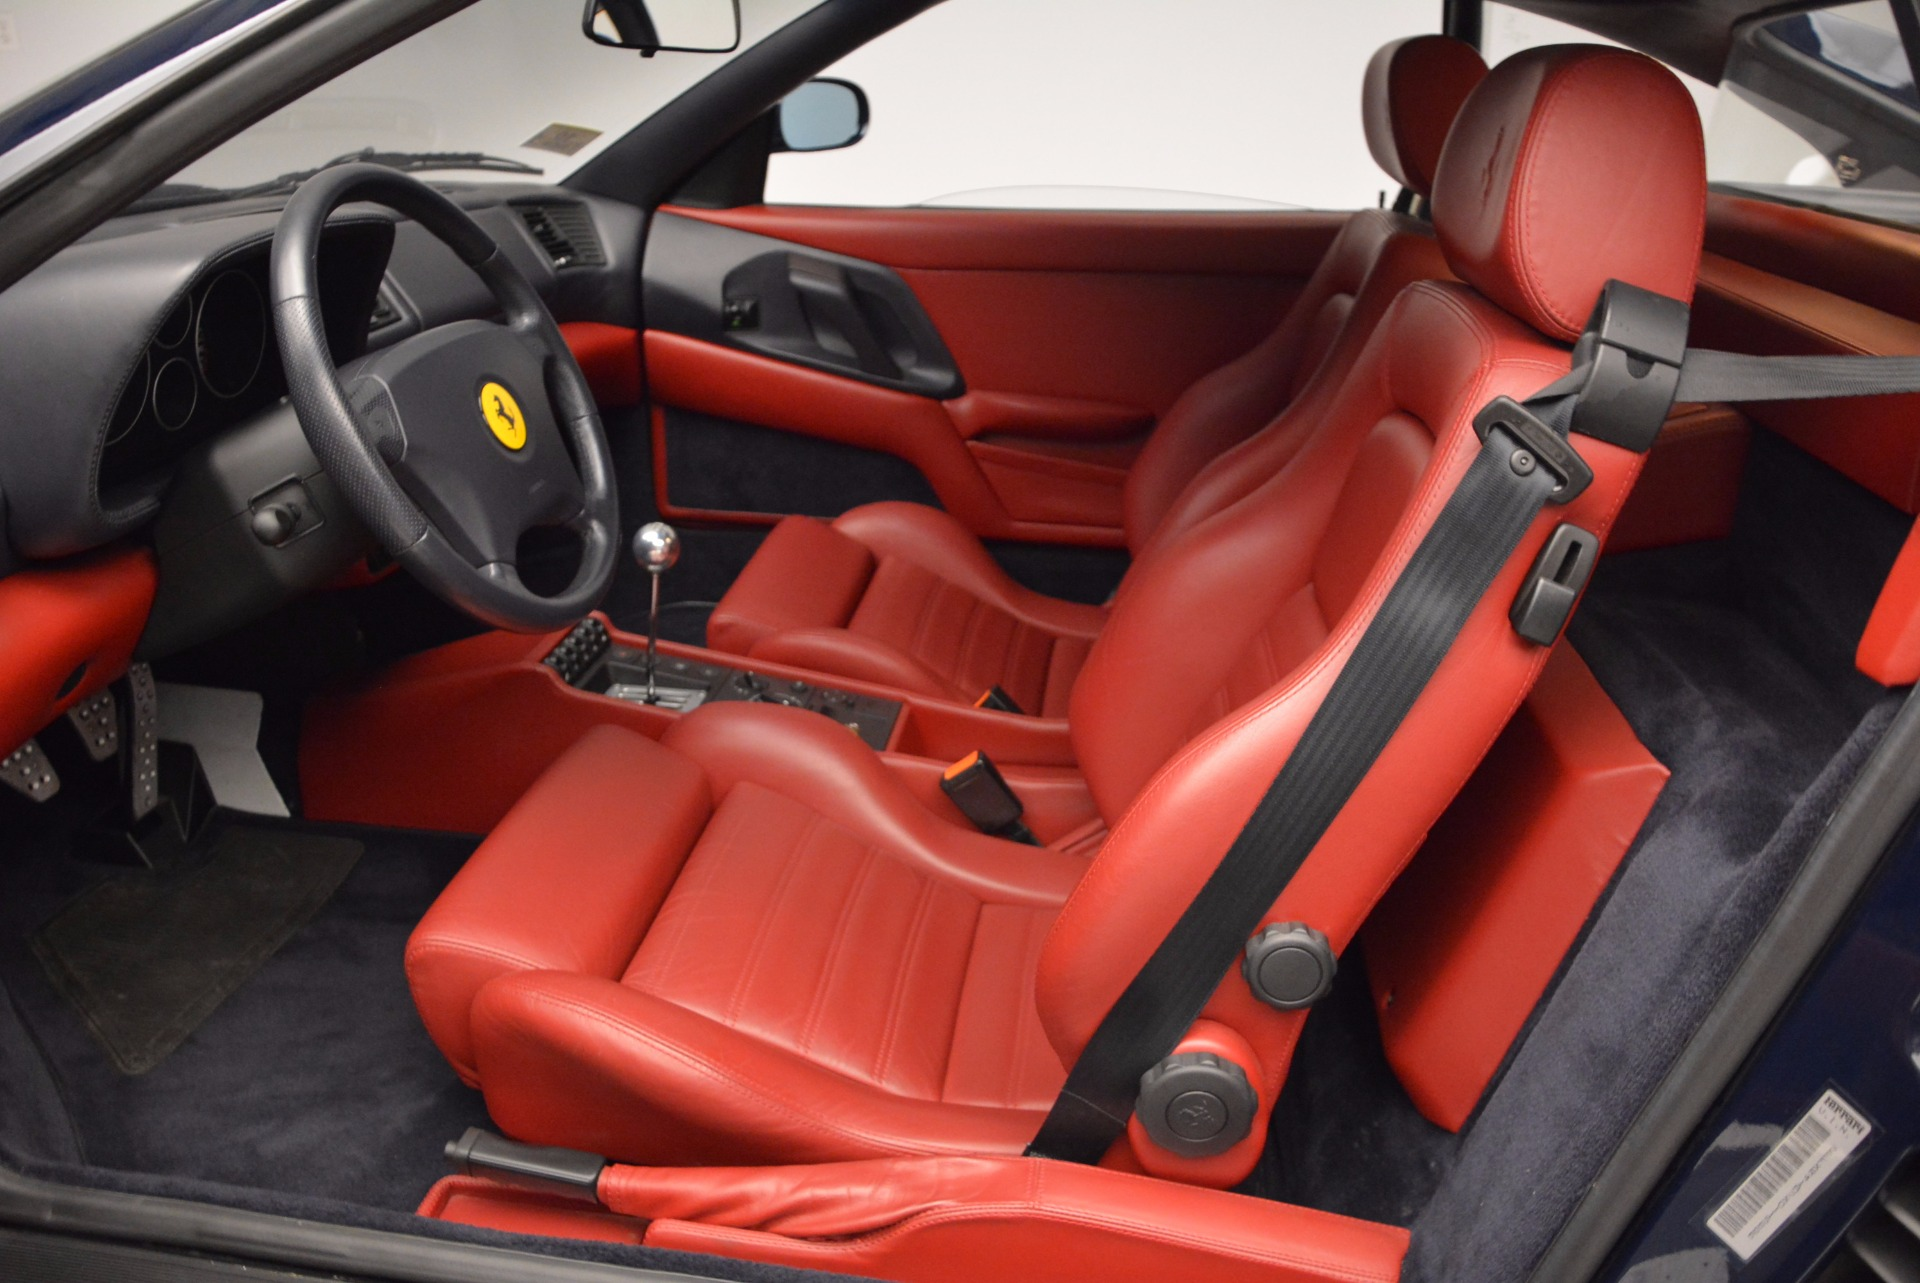 Used 1999 Ferrari 355 Berlinetta For Sale In Greenwich, CT 855_p15